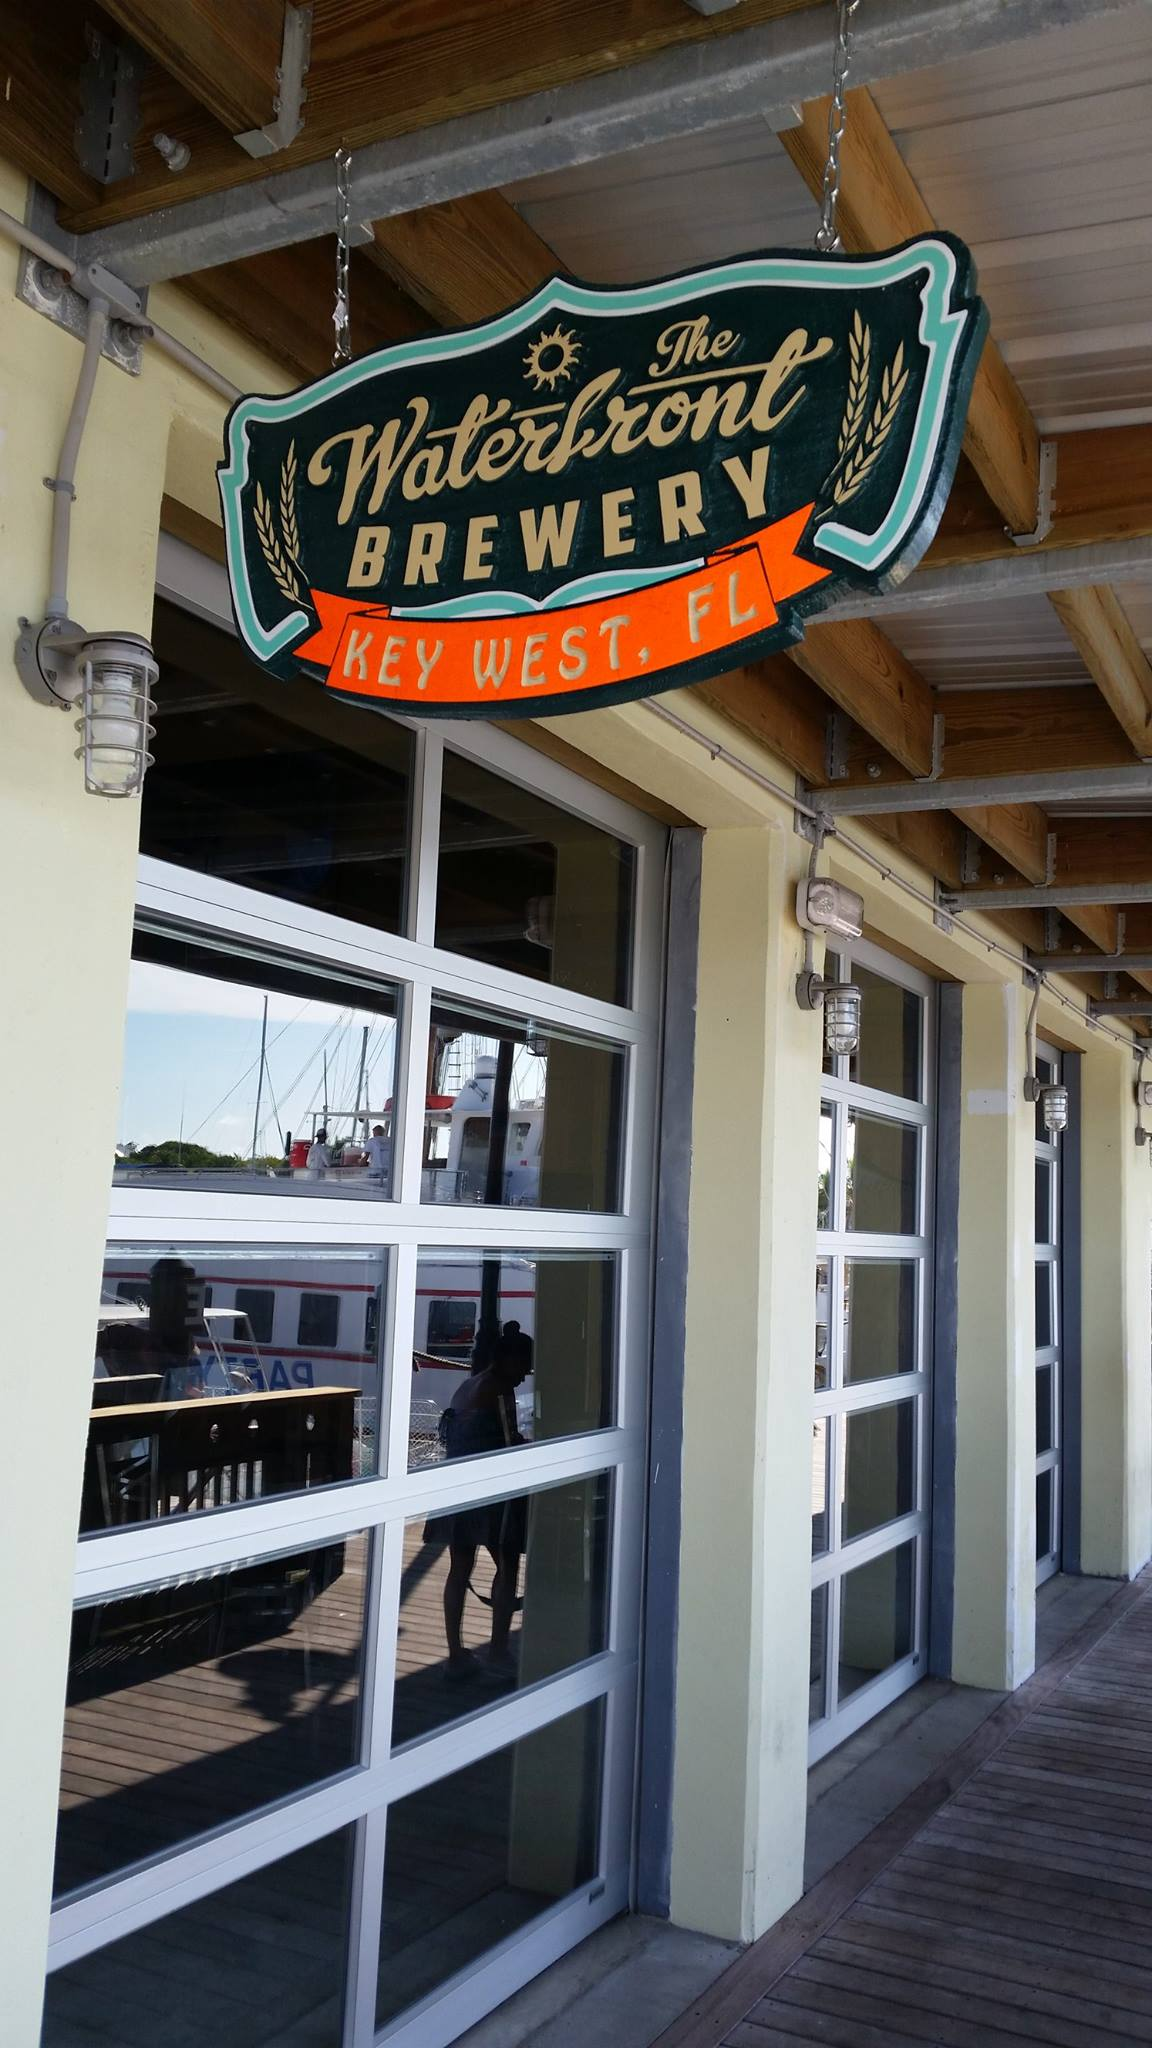 The Waterfront Brewery Key West Opens to Serve Great HandCrafted Beer  Food  Drink Like a